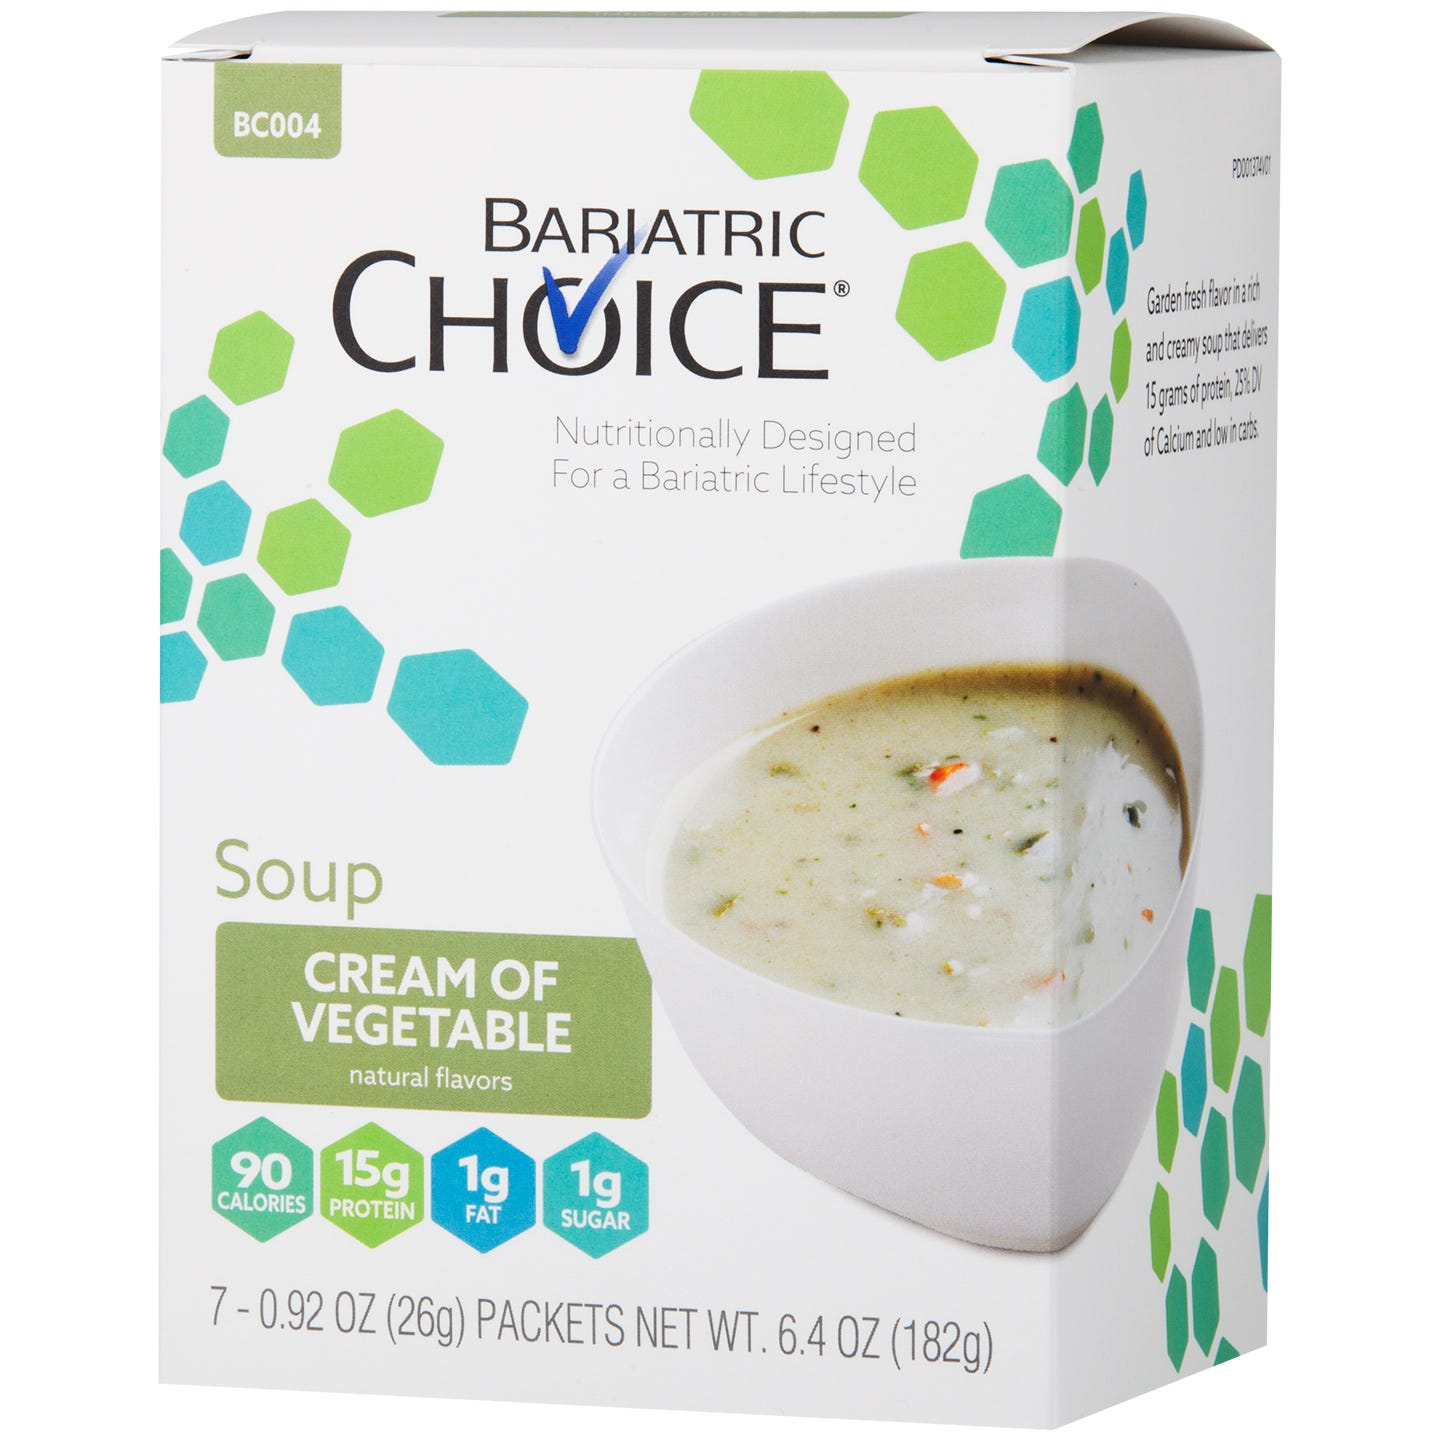 Bariatric Choice Soup, Cream of Vegetable (7ct)